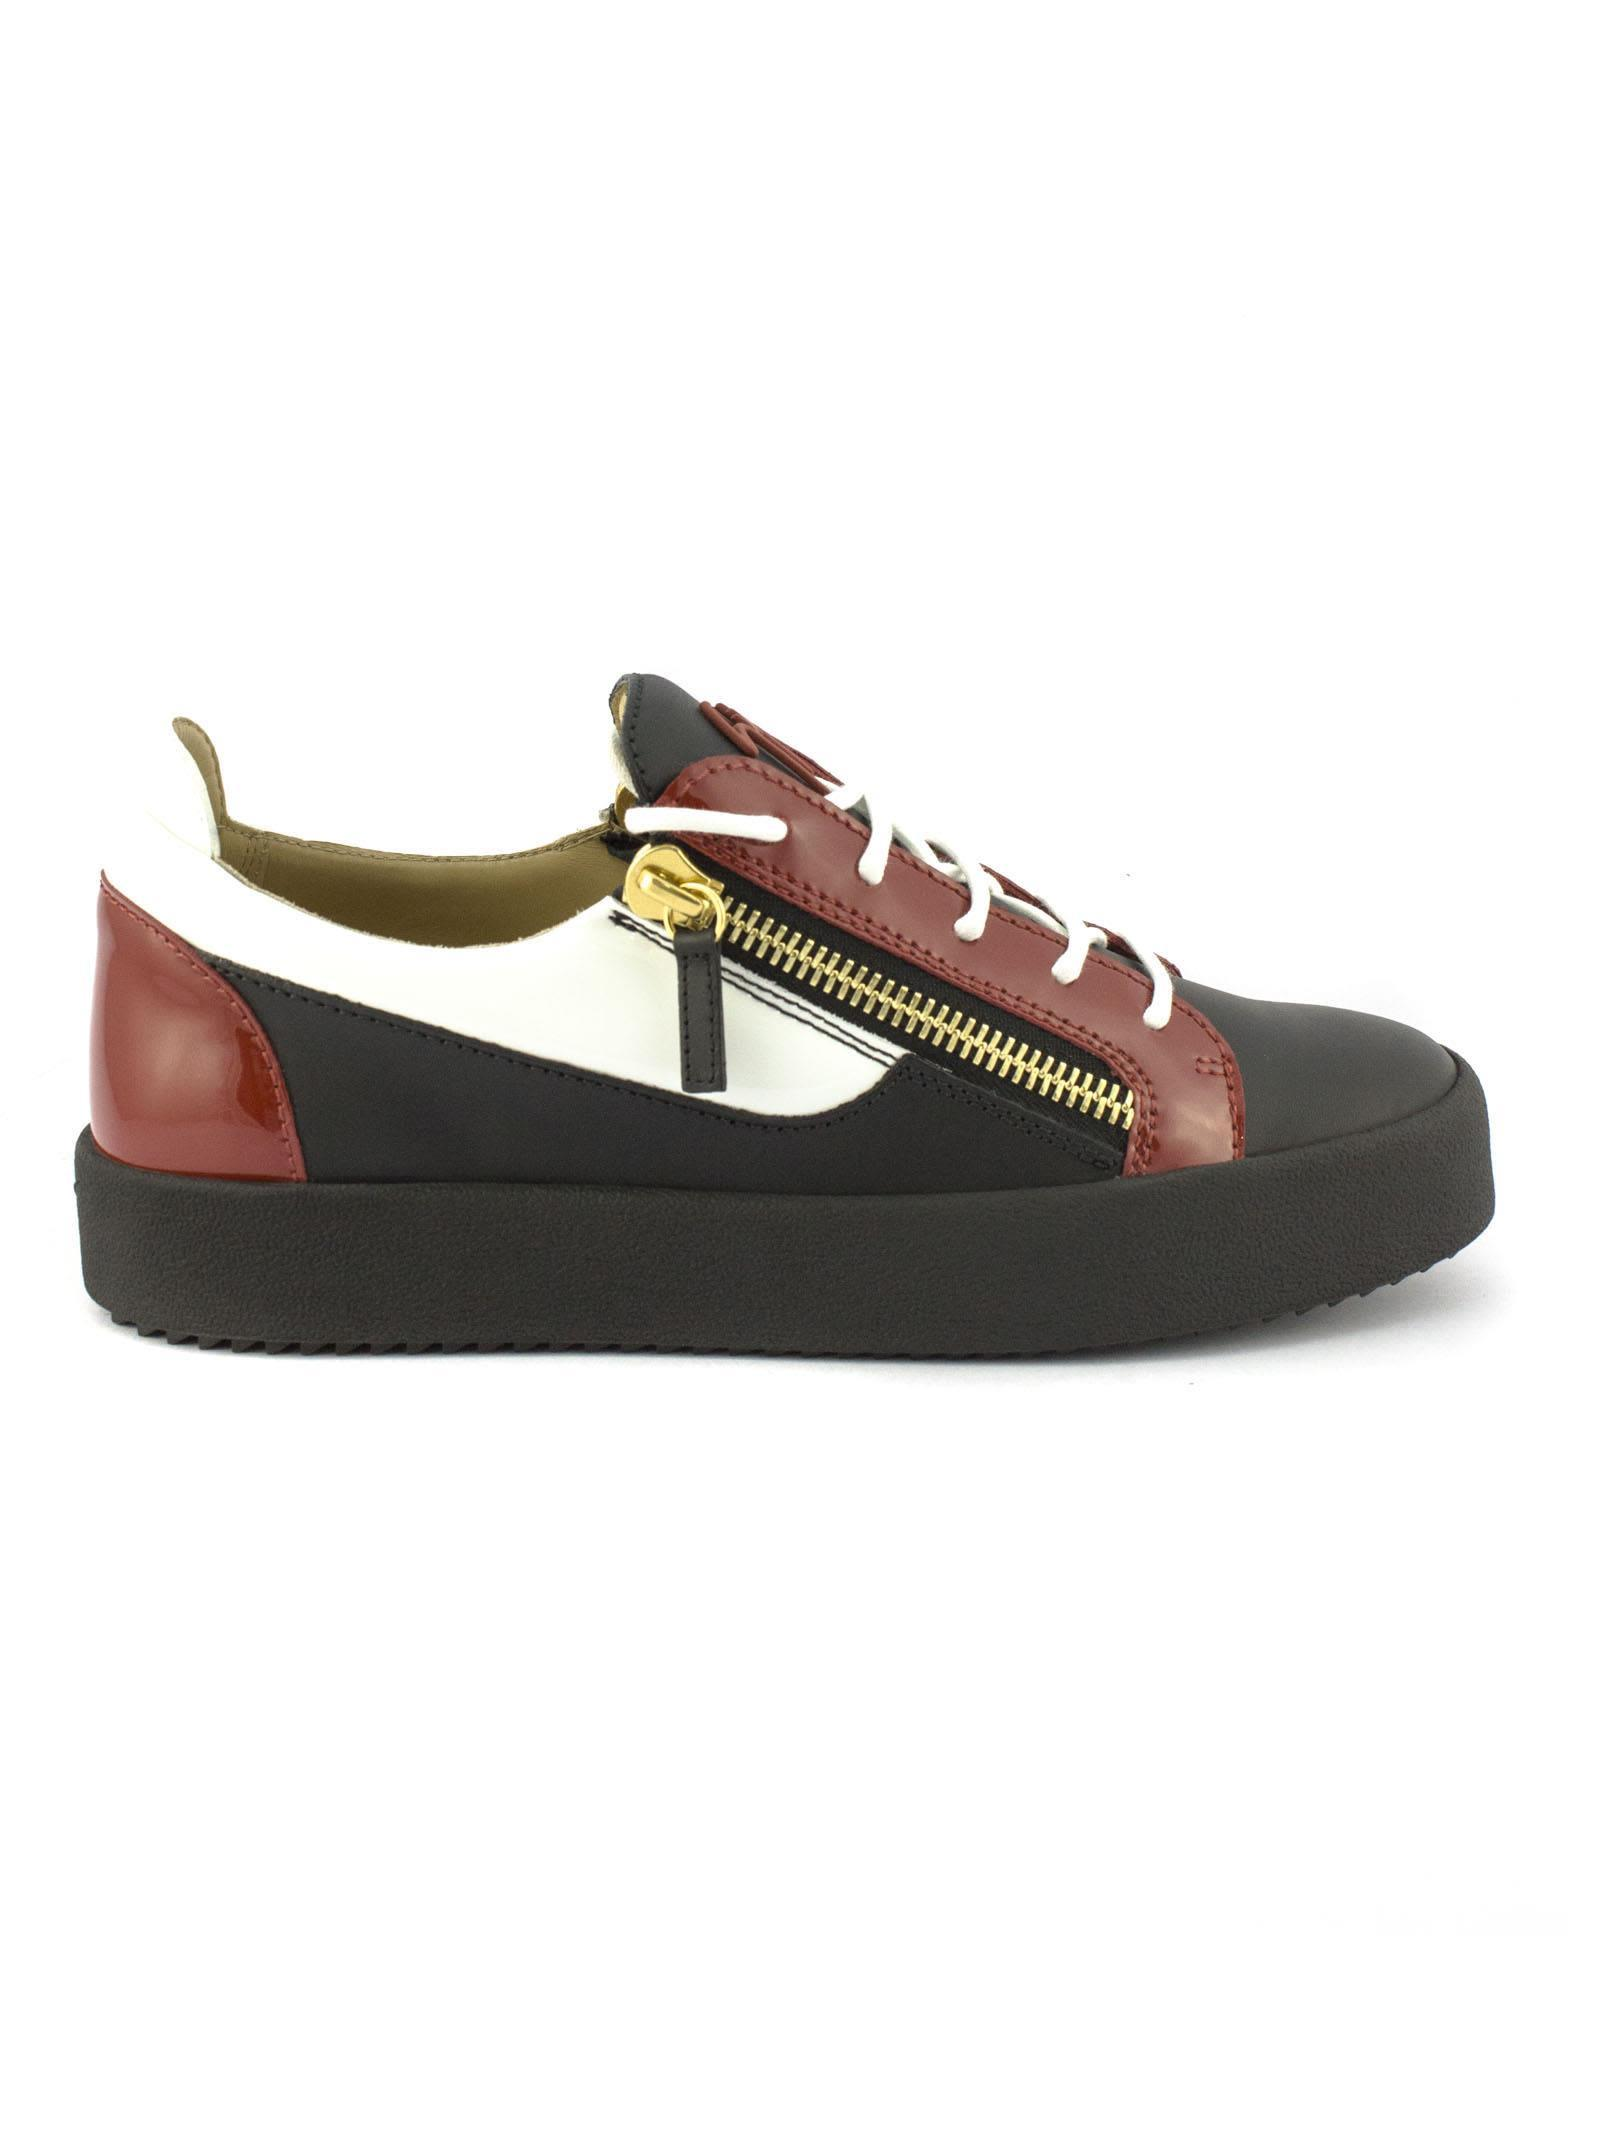 82e29f887df6d Giuseppe Zanotti Black Calfskin Leather Low-Top Sneaker With Red Patent  Leather Insert. In